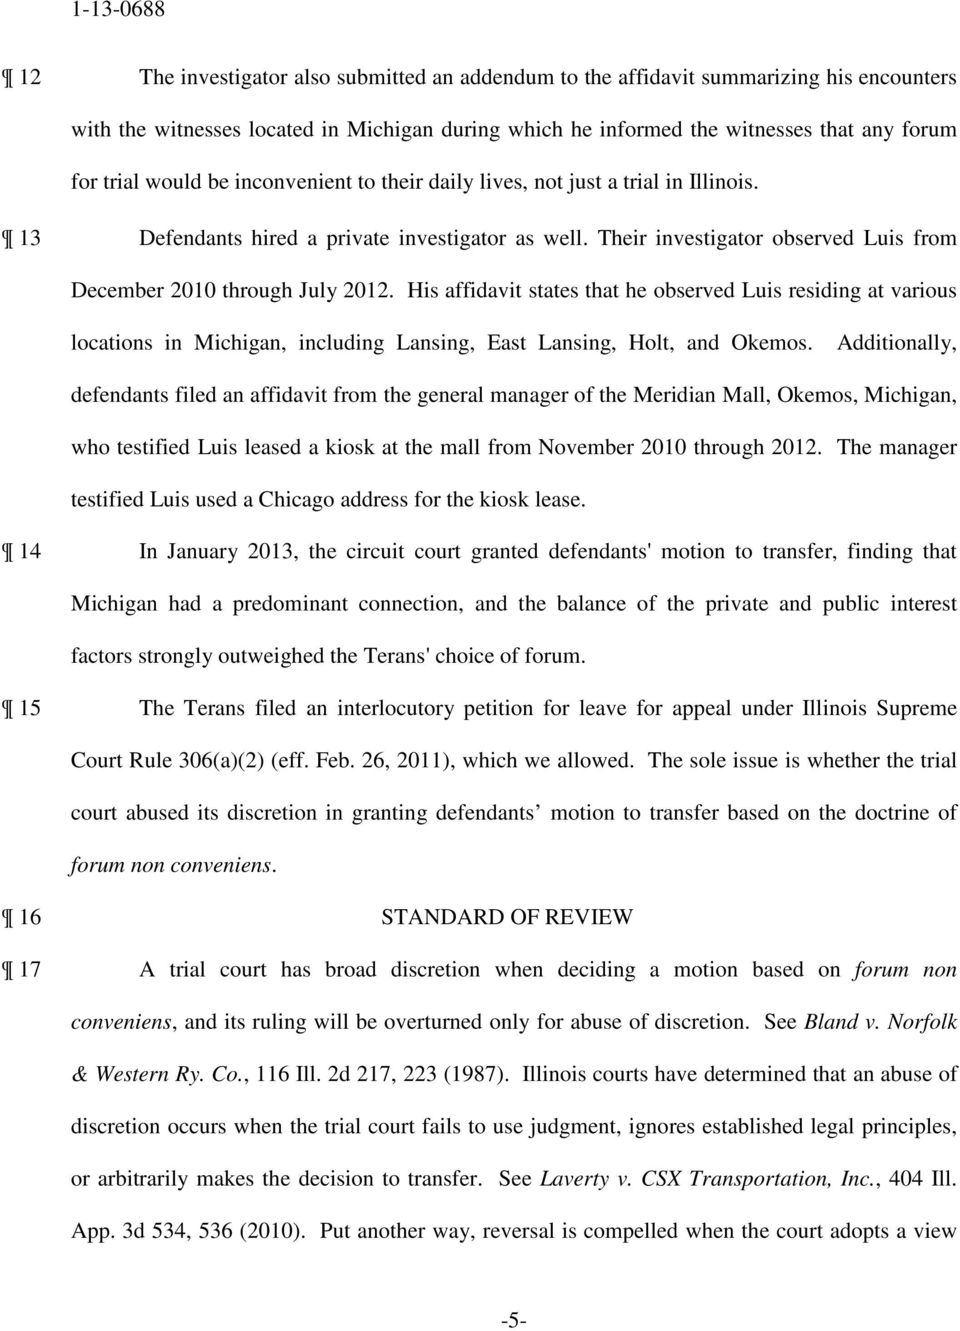 His affidavit states that he observed Luis residing at various locations in Michigan, including Lansing, East Lansing, Holt, and Okemos.